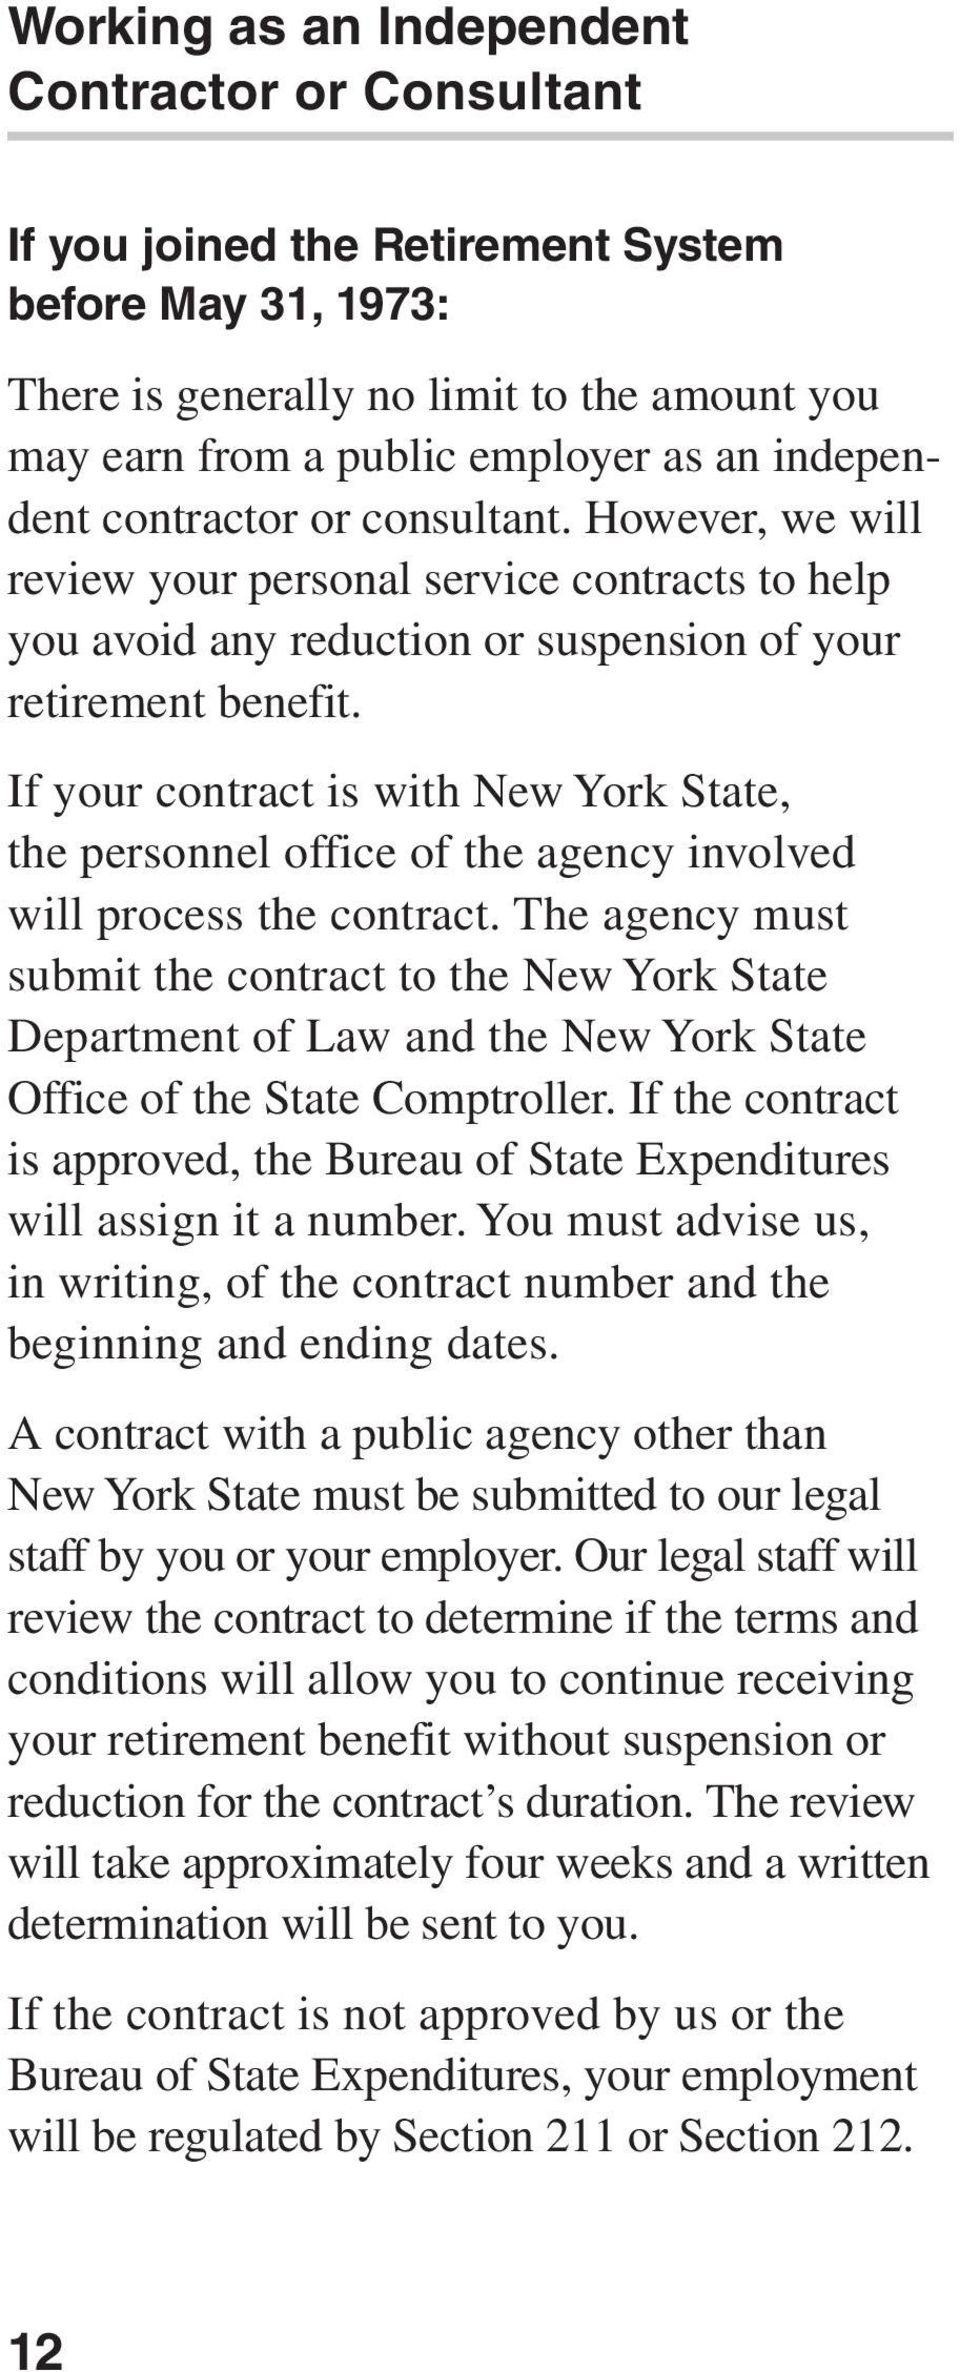 If your contract is with New York State, the personnel office of the agency involved will process the contract.